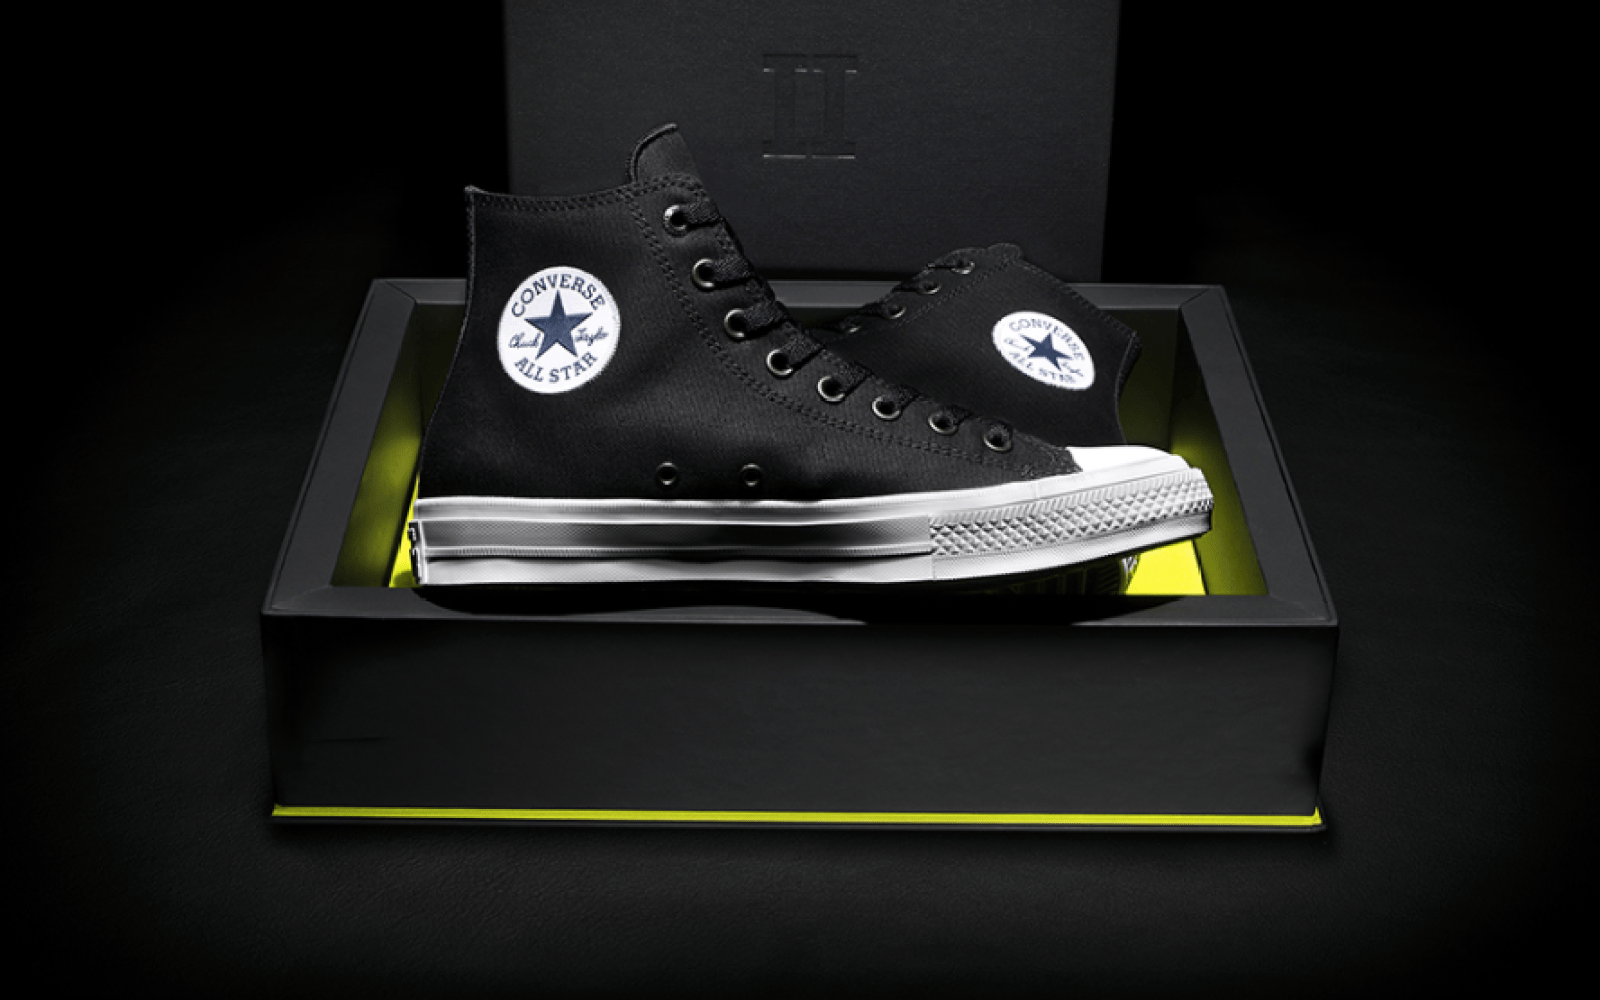 ac1166a7154 Converse upgrades its Chuck Taylor All Stars with new technology for the  first time in nearly a century